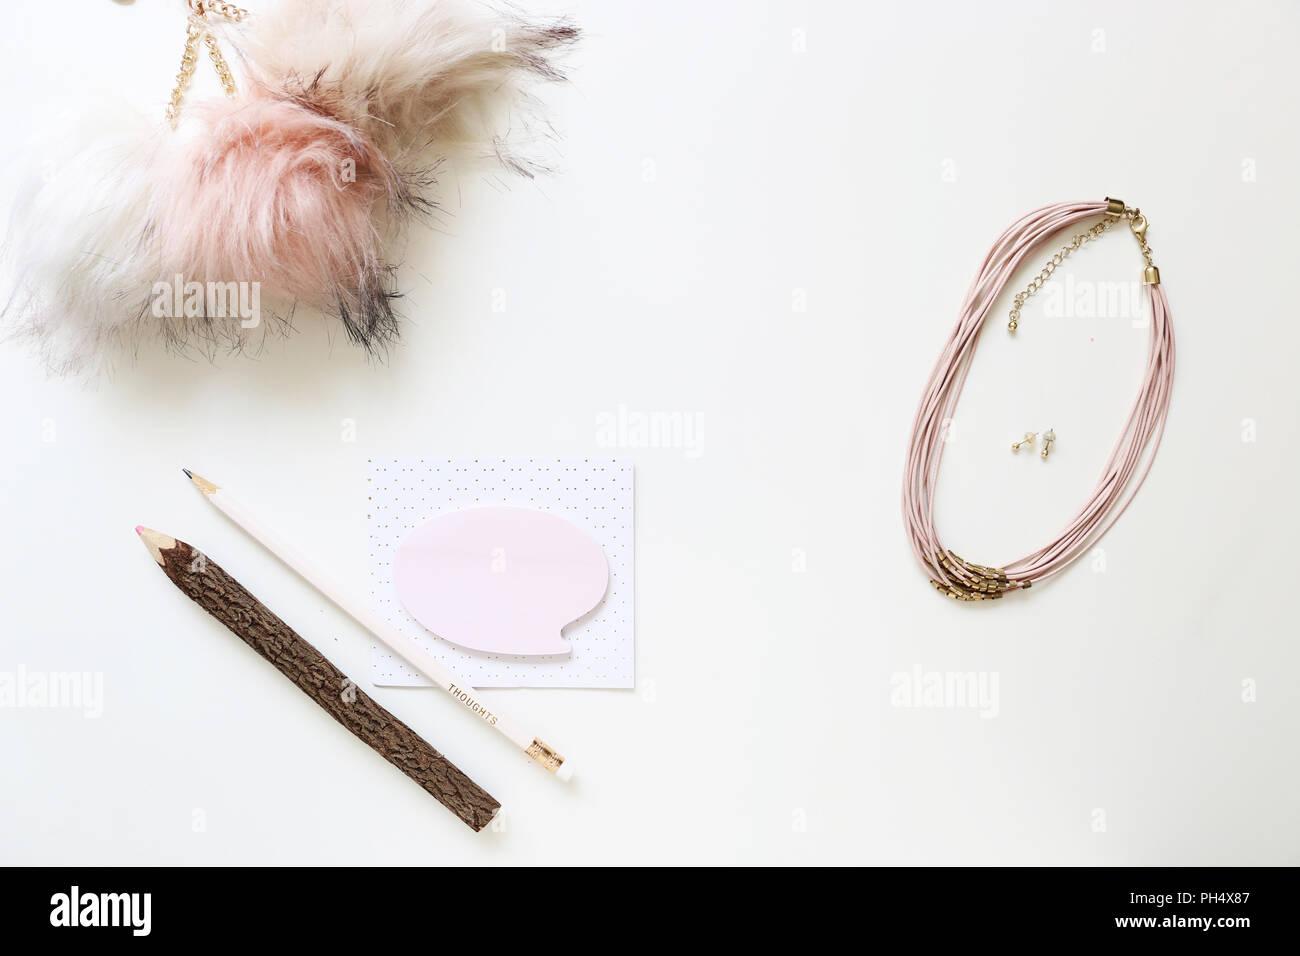 White and Pink Tones Flatlay on Desk - Stock Image